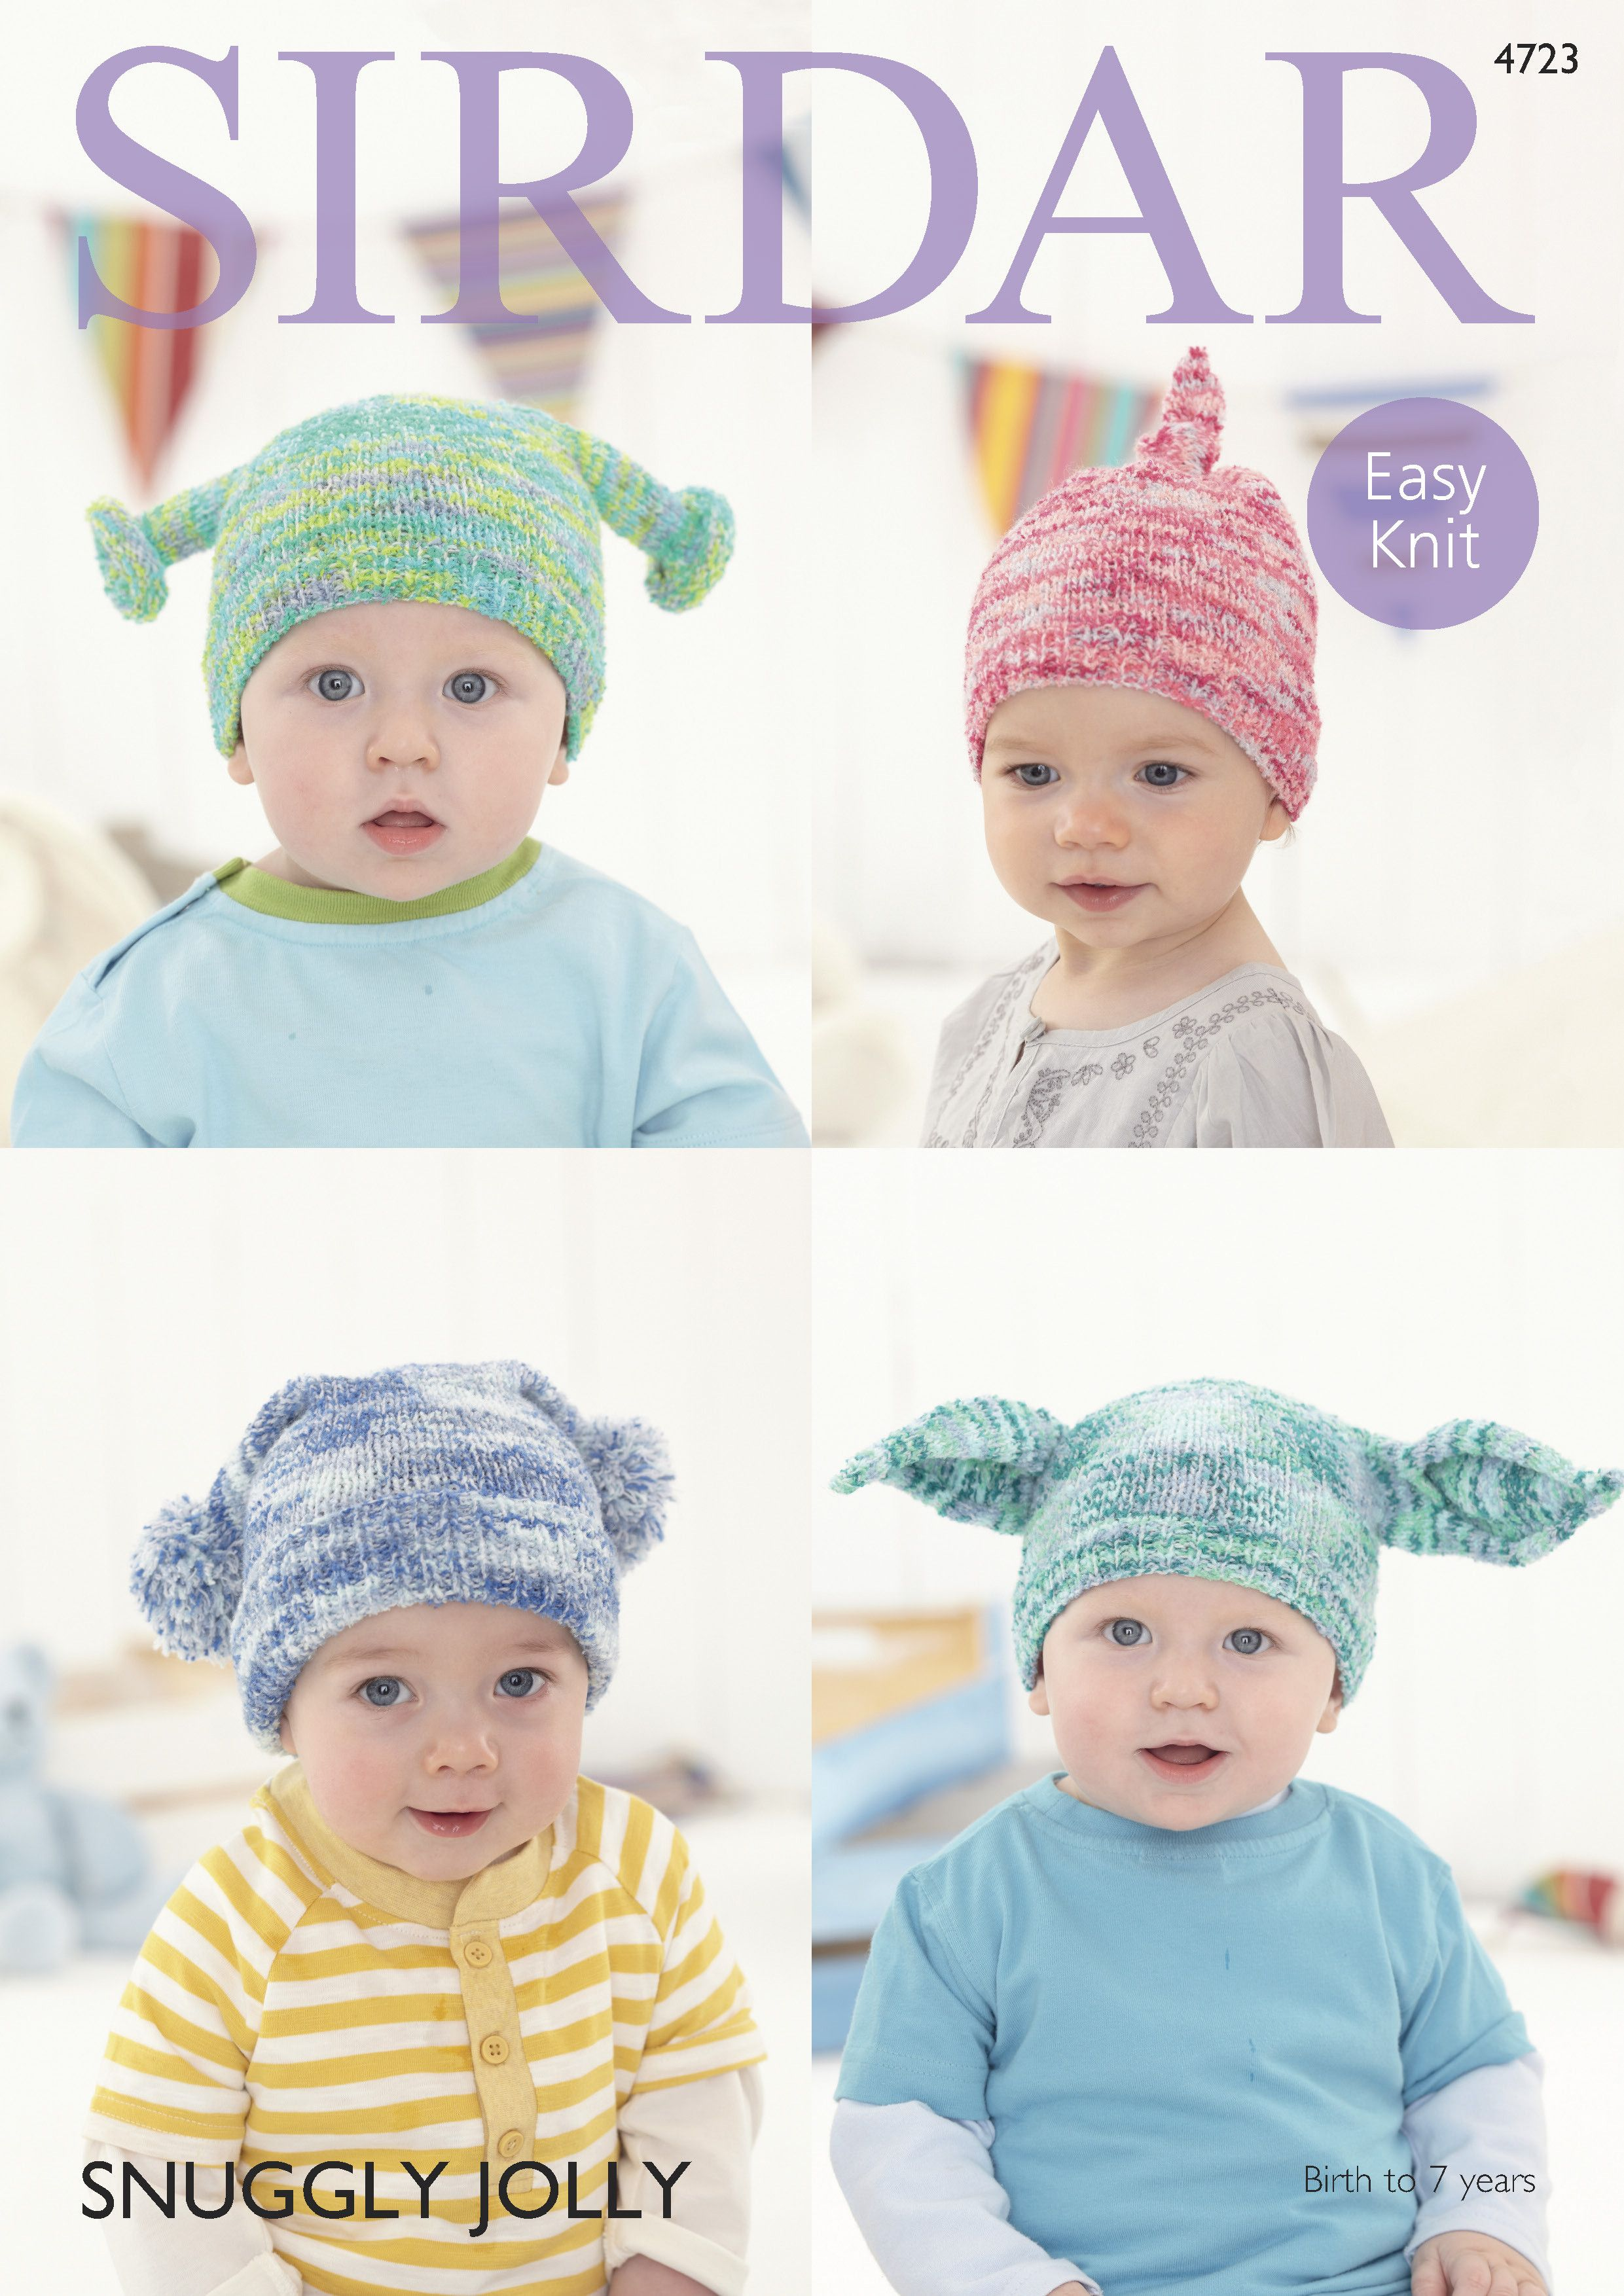 Baby and childs hats in sirdar snuggly jolly 4723 digital baby and childs hats in sirdar snuggly jolly 4723 digital version children hatsfree knittingknitting patternsbaby bankloansurffo Image collections